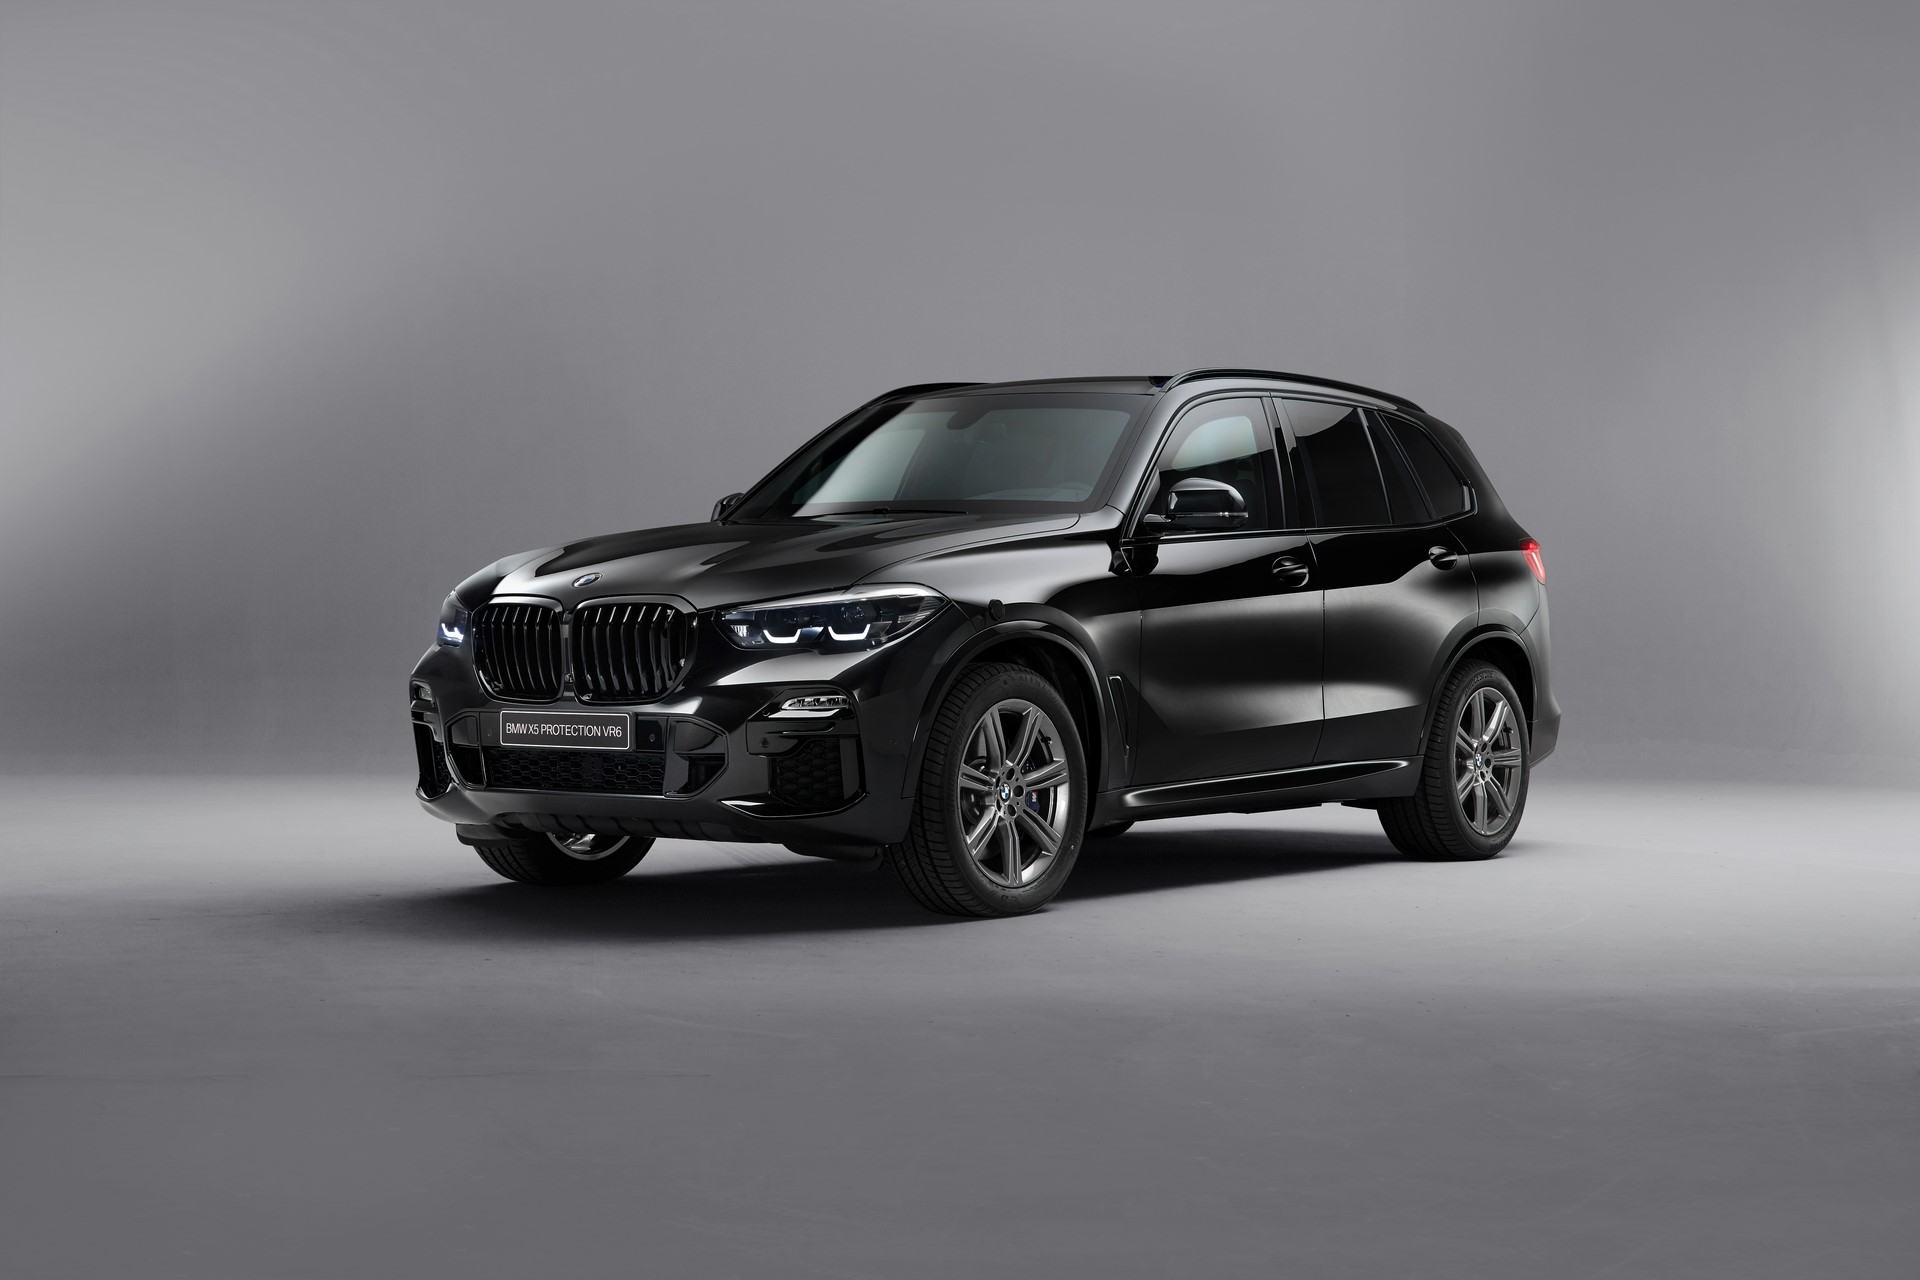 BMW-X5-Protection-VR6-1